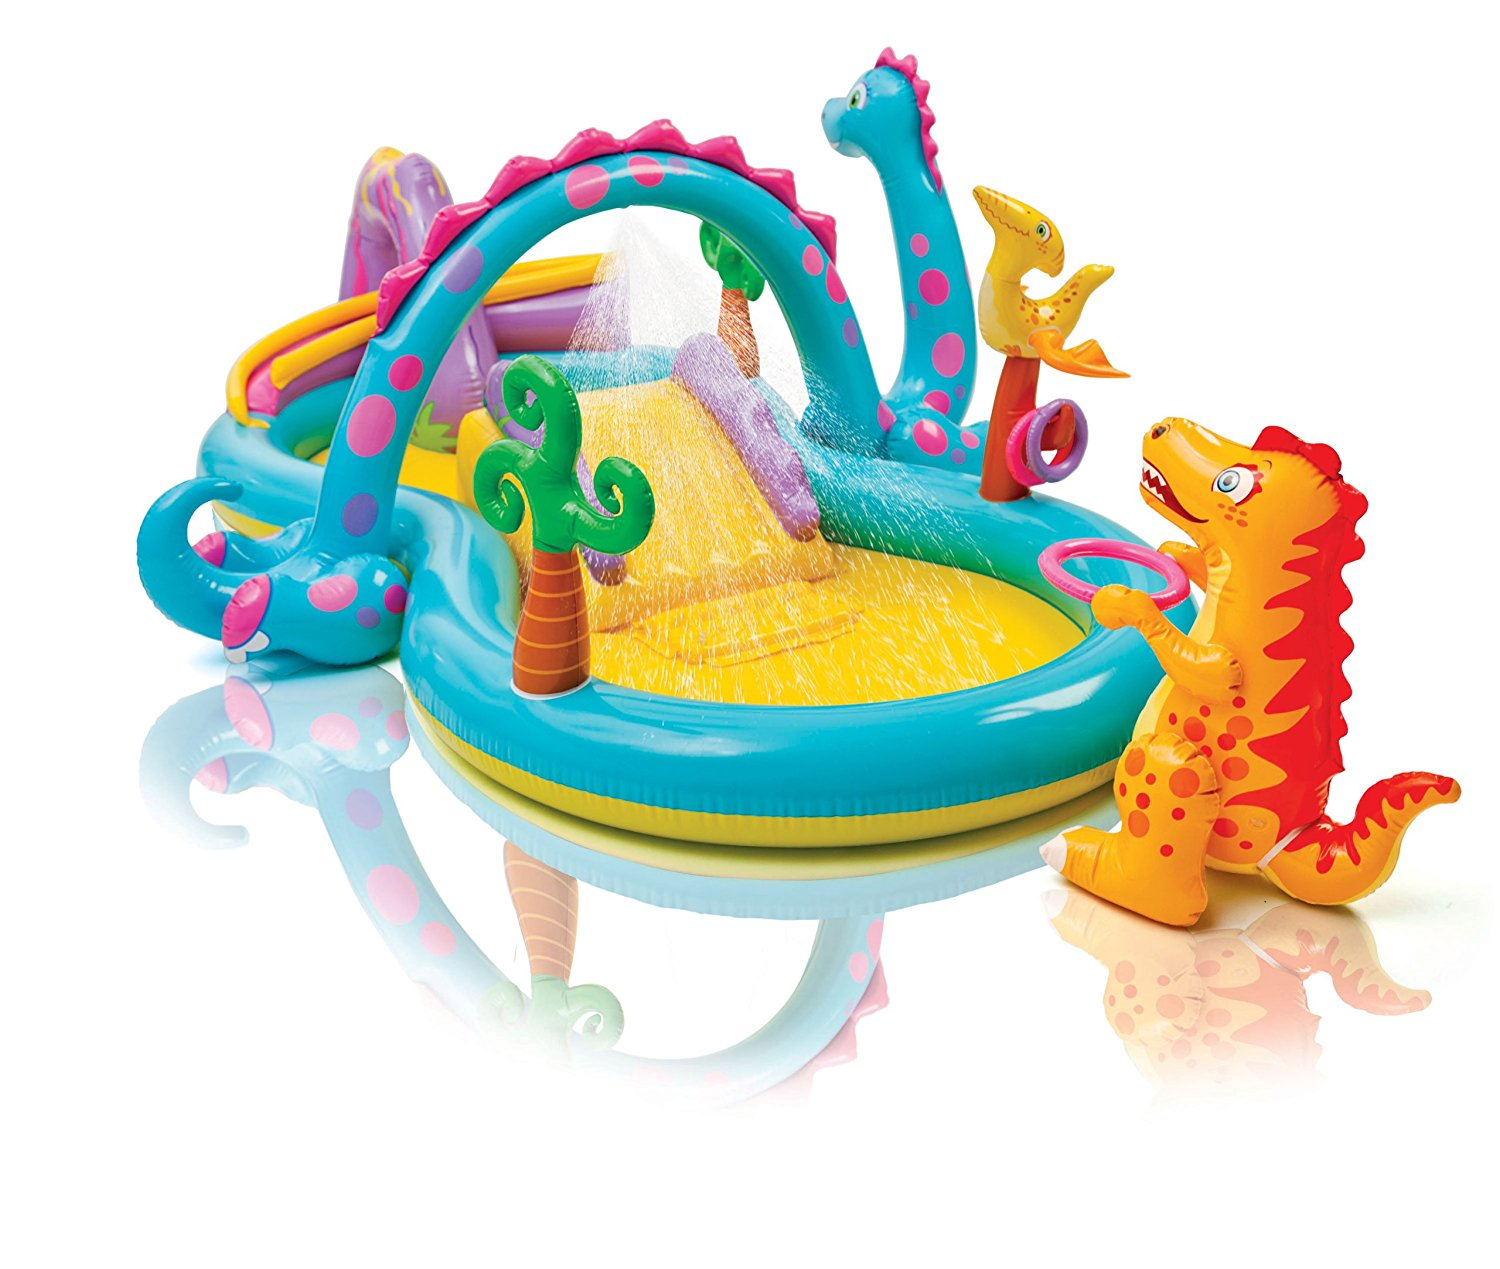 Intex Dinoland Play Center amazon